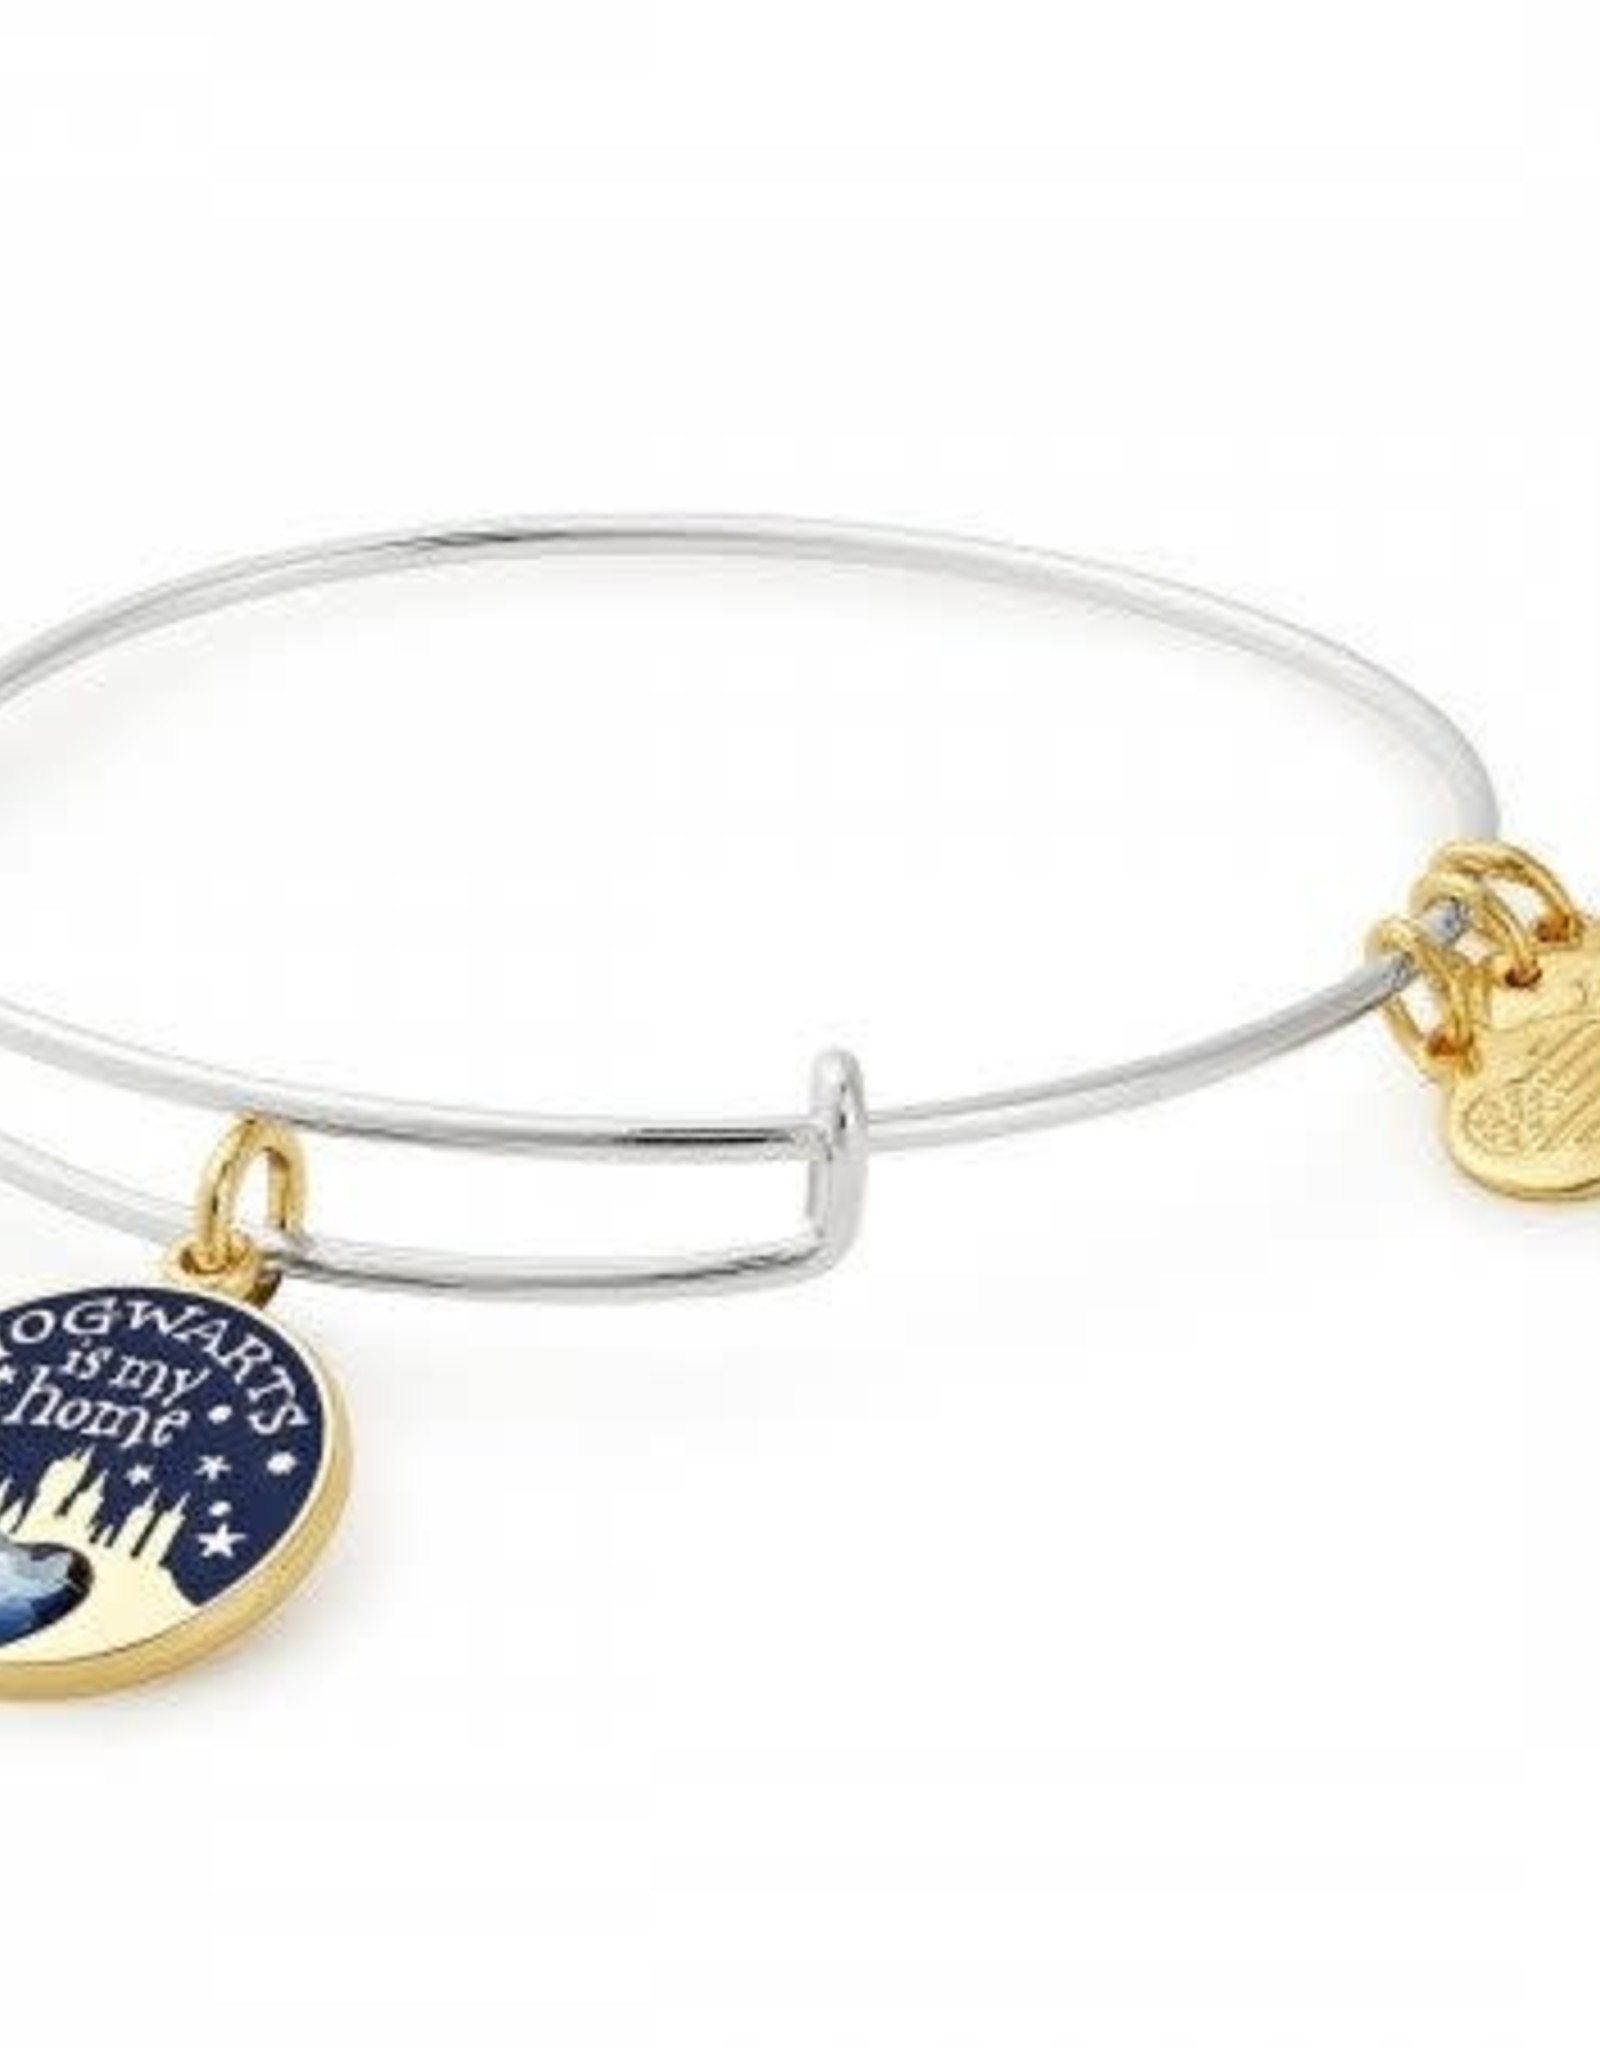 Alex and Ani Harry Potter, Hogwarts is My Home, Two Tone, SS